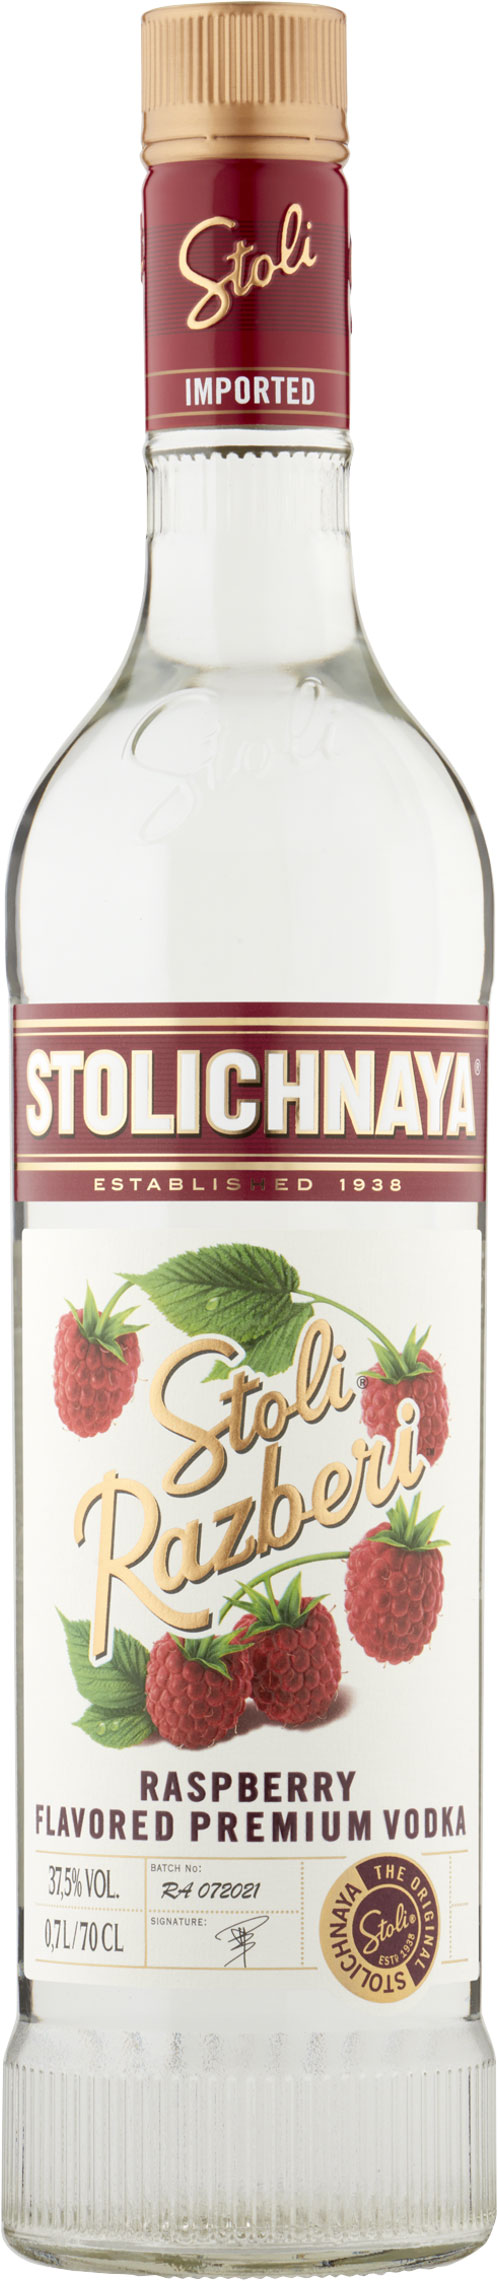 Stolichnaya - Razberi 70cl Bottle